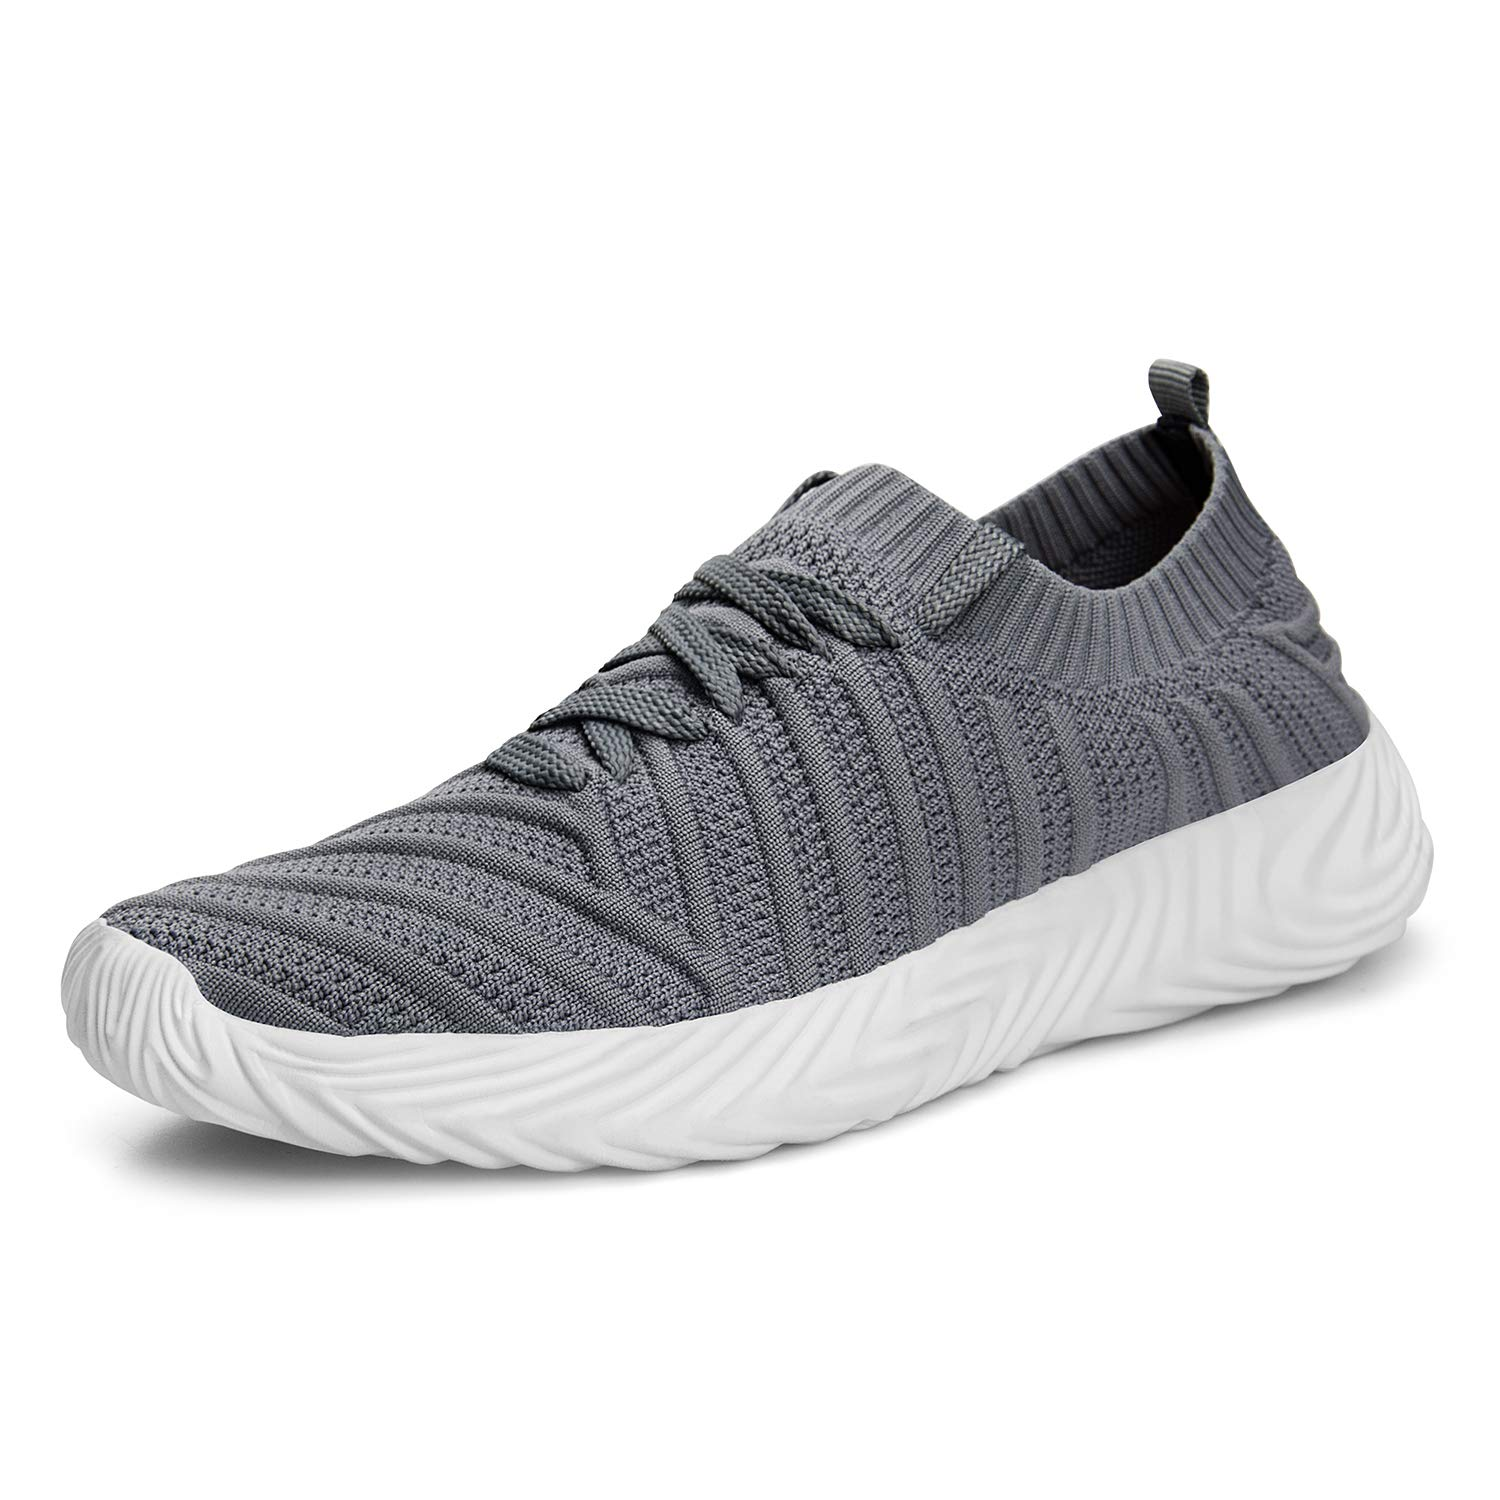 ZOCAVIA Men s Sneakers Ligthweight Non Slip Breathable Mesh Casual Walking Workout Running Shoes